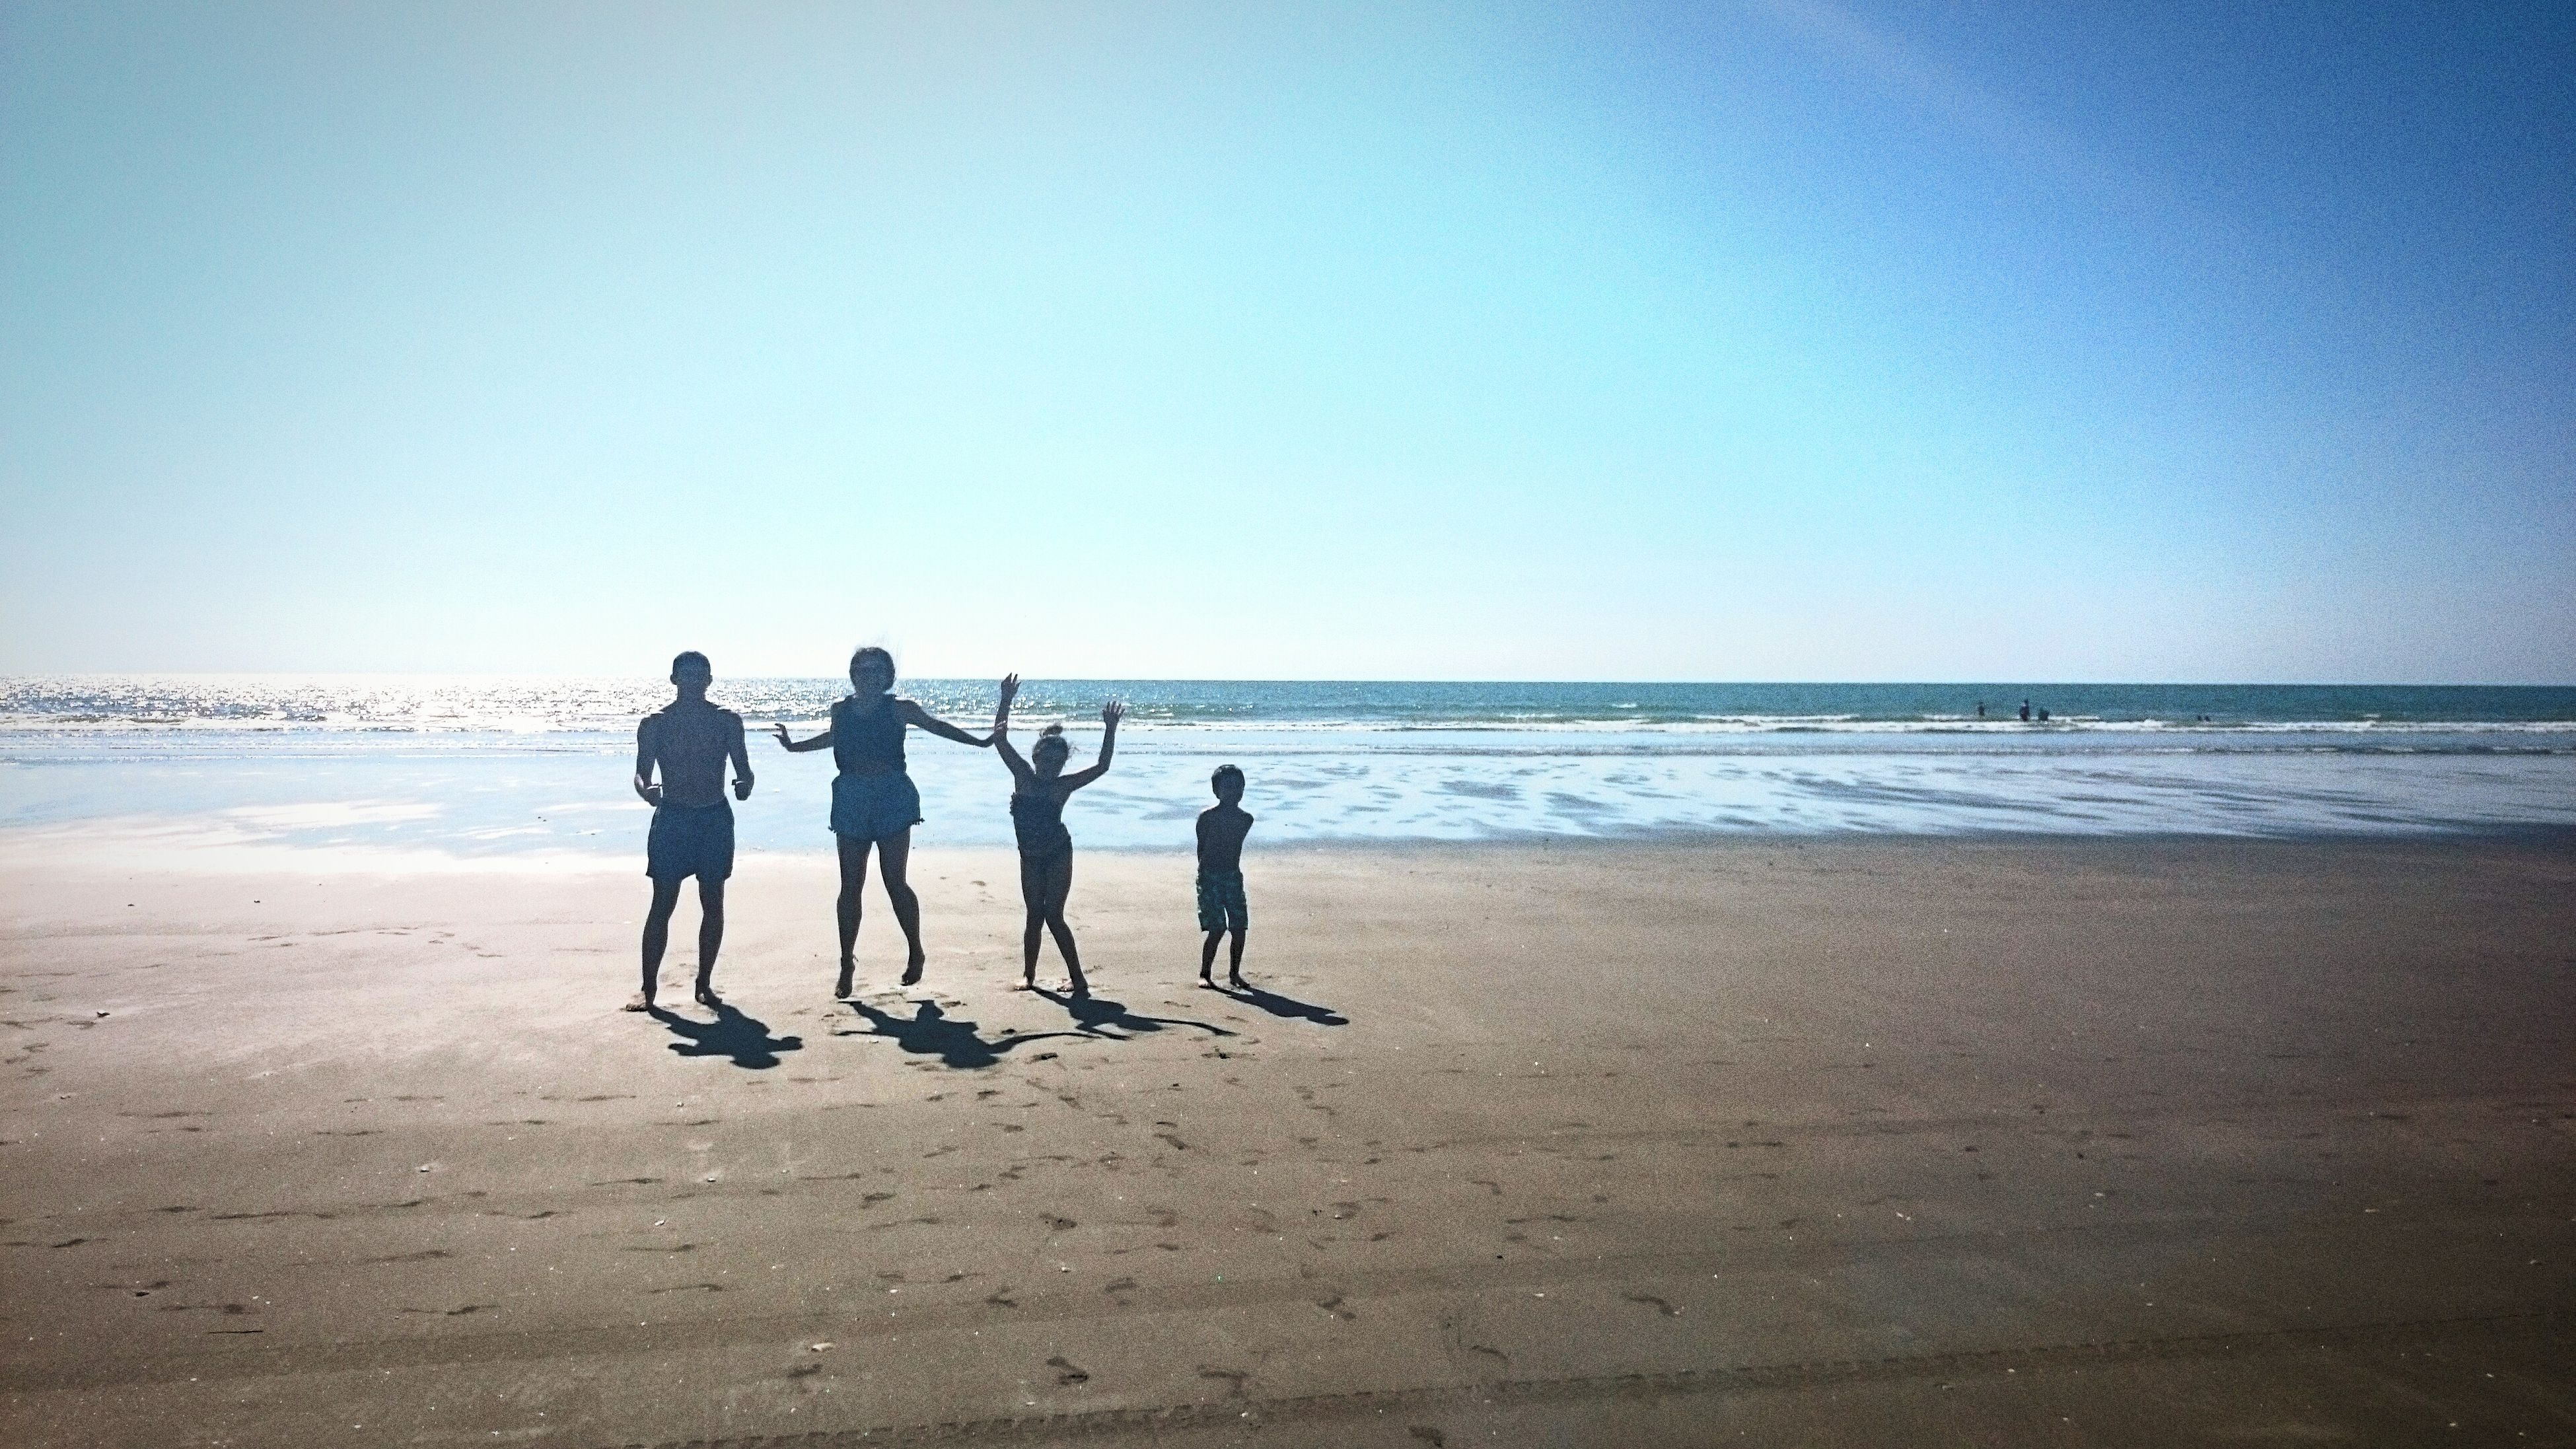 beach, sea, horizon over water, shore, water, sand, leisure activity, clear sky, lifestyles, full length, copy space, vacations, togetherness, men, walking, wave, person, standing